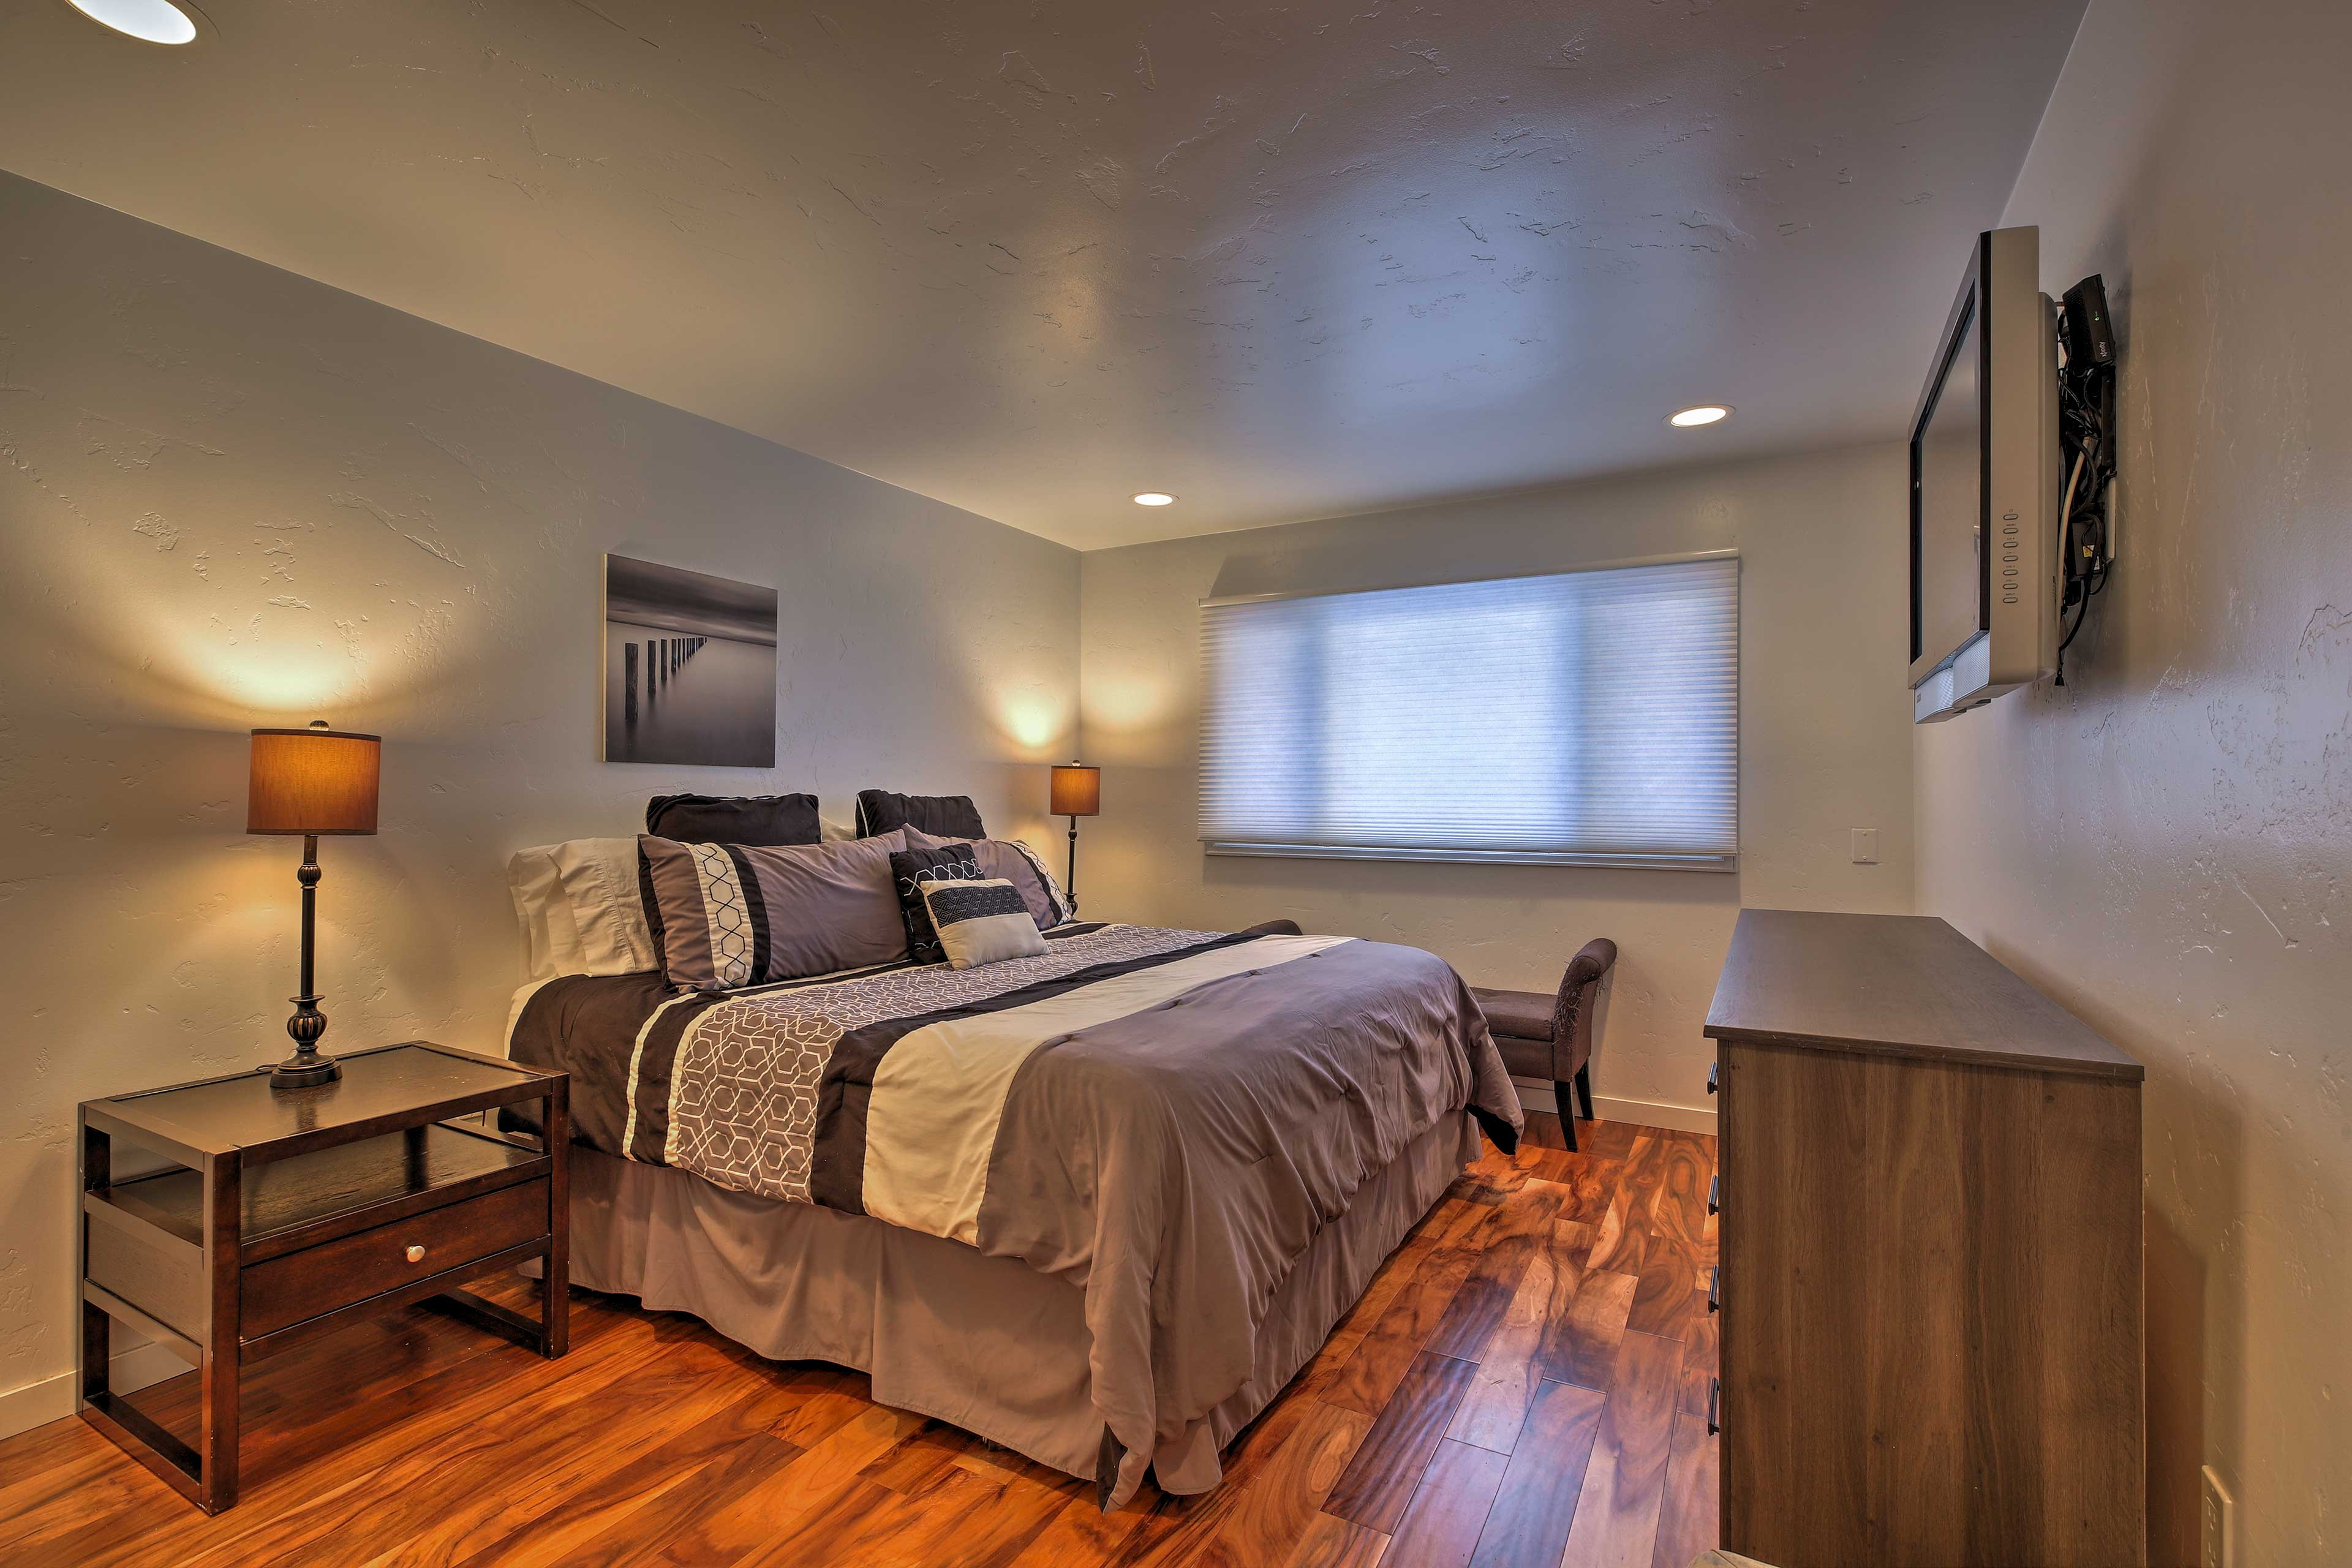 Enjoy peaceful slumbers on the king bed in the master bedroom.